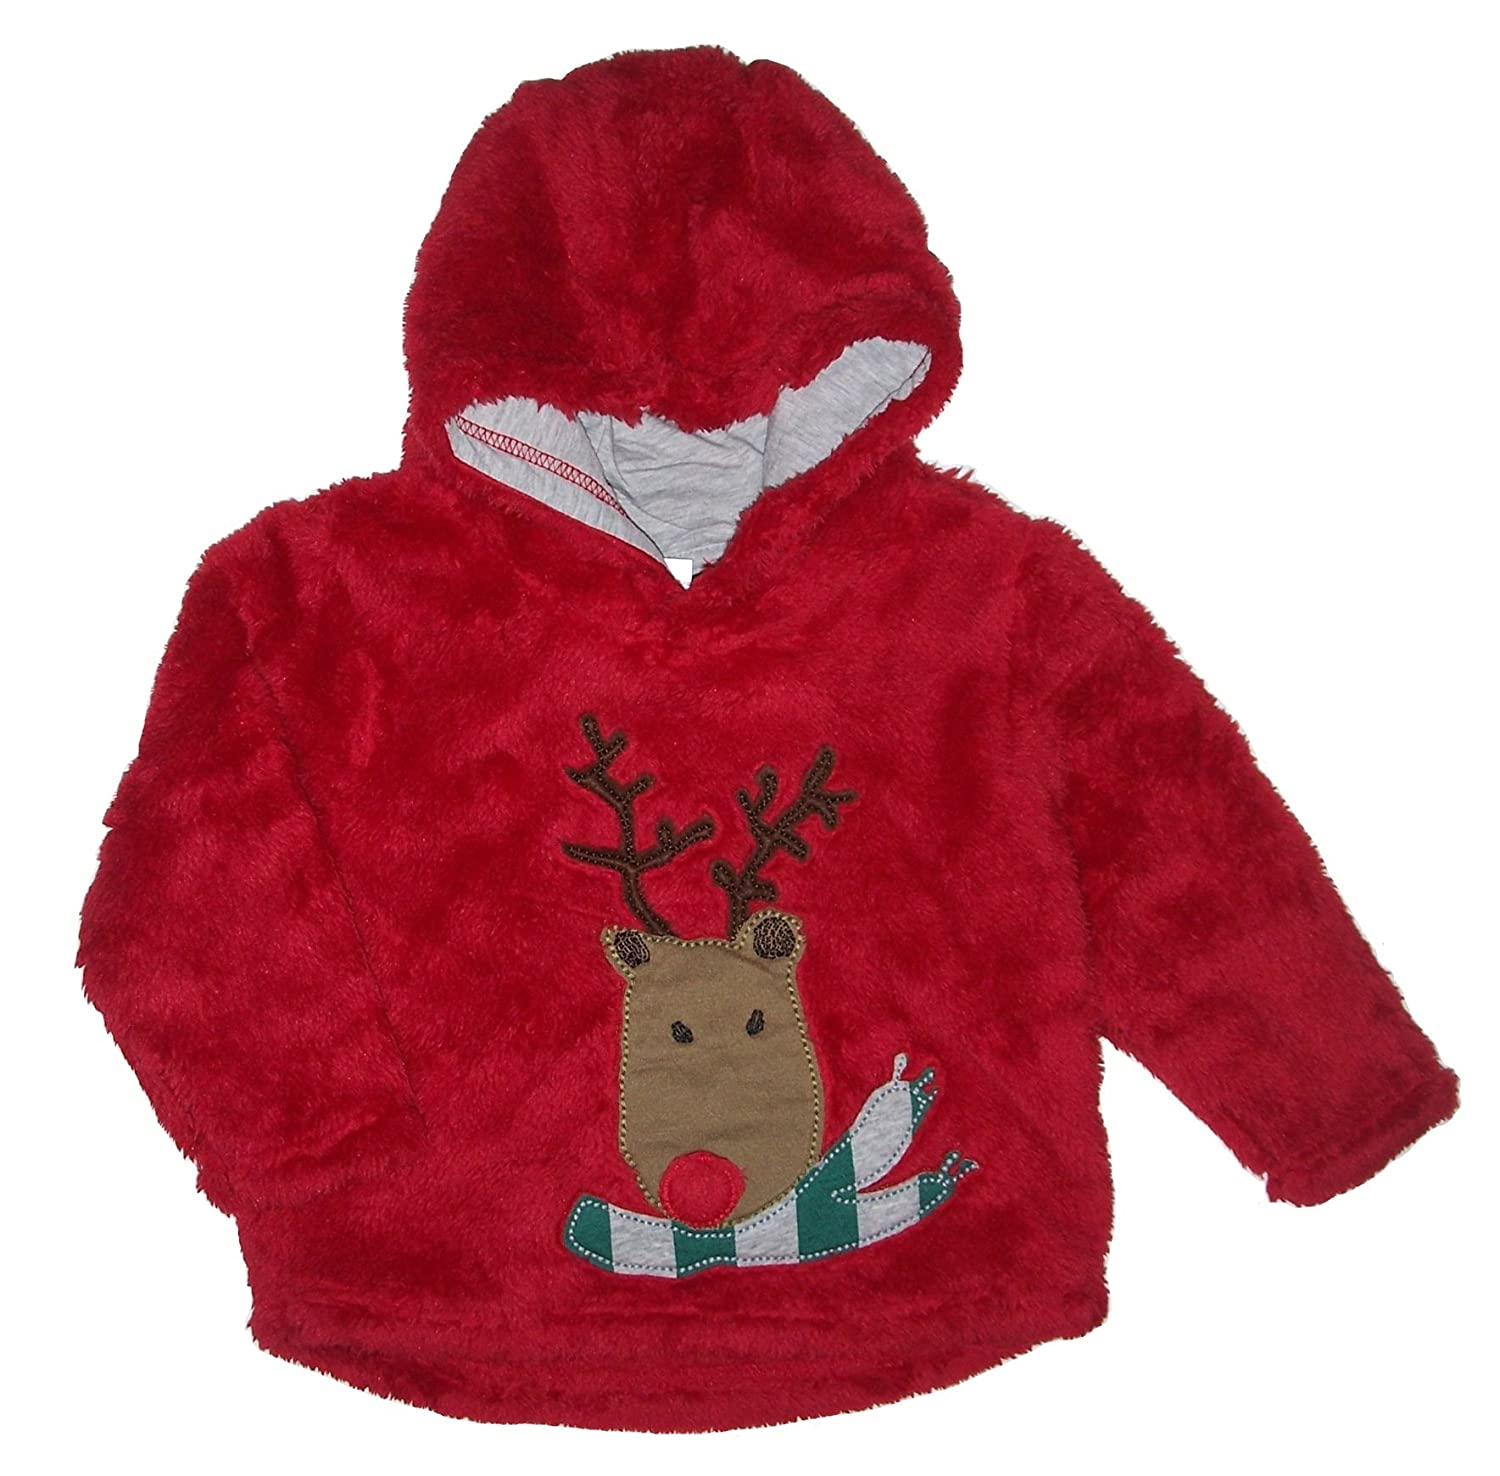 cc1ac1c53 Baby Boy Girl Furry Fleece Reindeer Hoody Age 18 24 Months Christmas ...